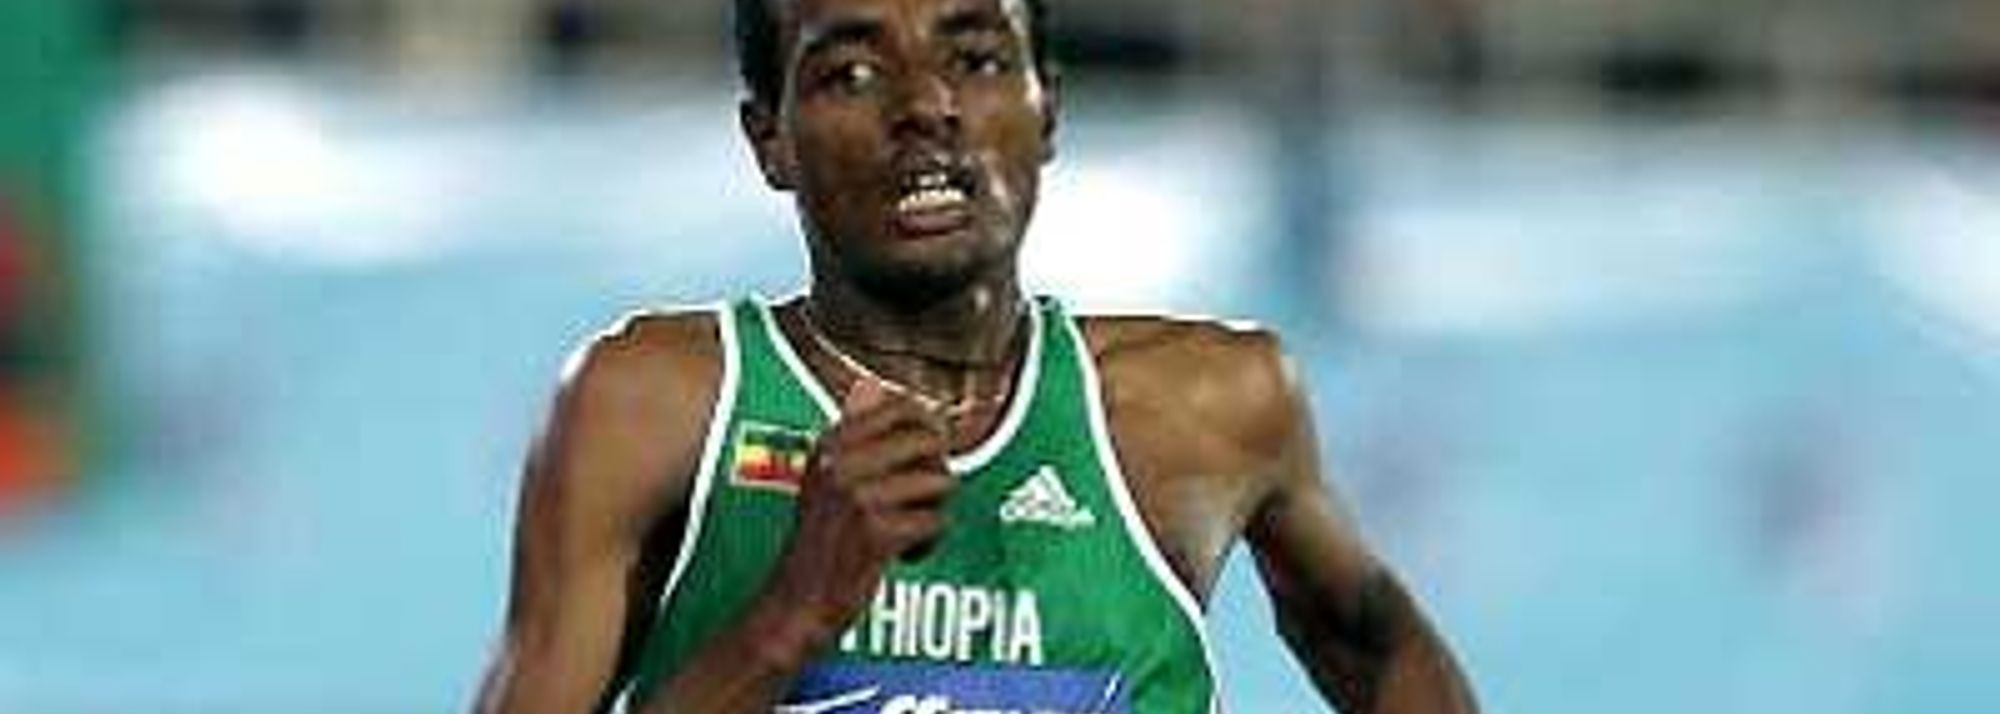 As much as Ethiopian runner Tariku Bekele wants to avoid comparisons with his elder brother and multiple world 10000m champion Kenenisa, his victory in the 5000m race in Beijing was like a page torn from the latter's distance running textbook.